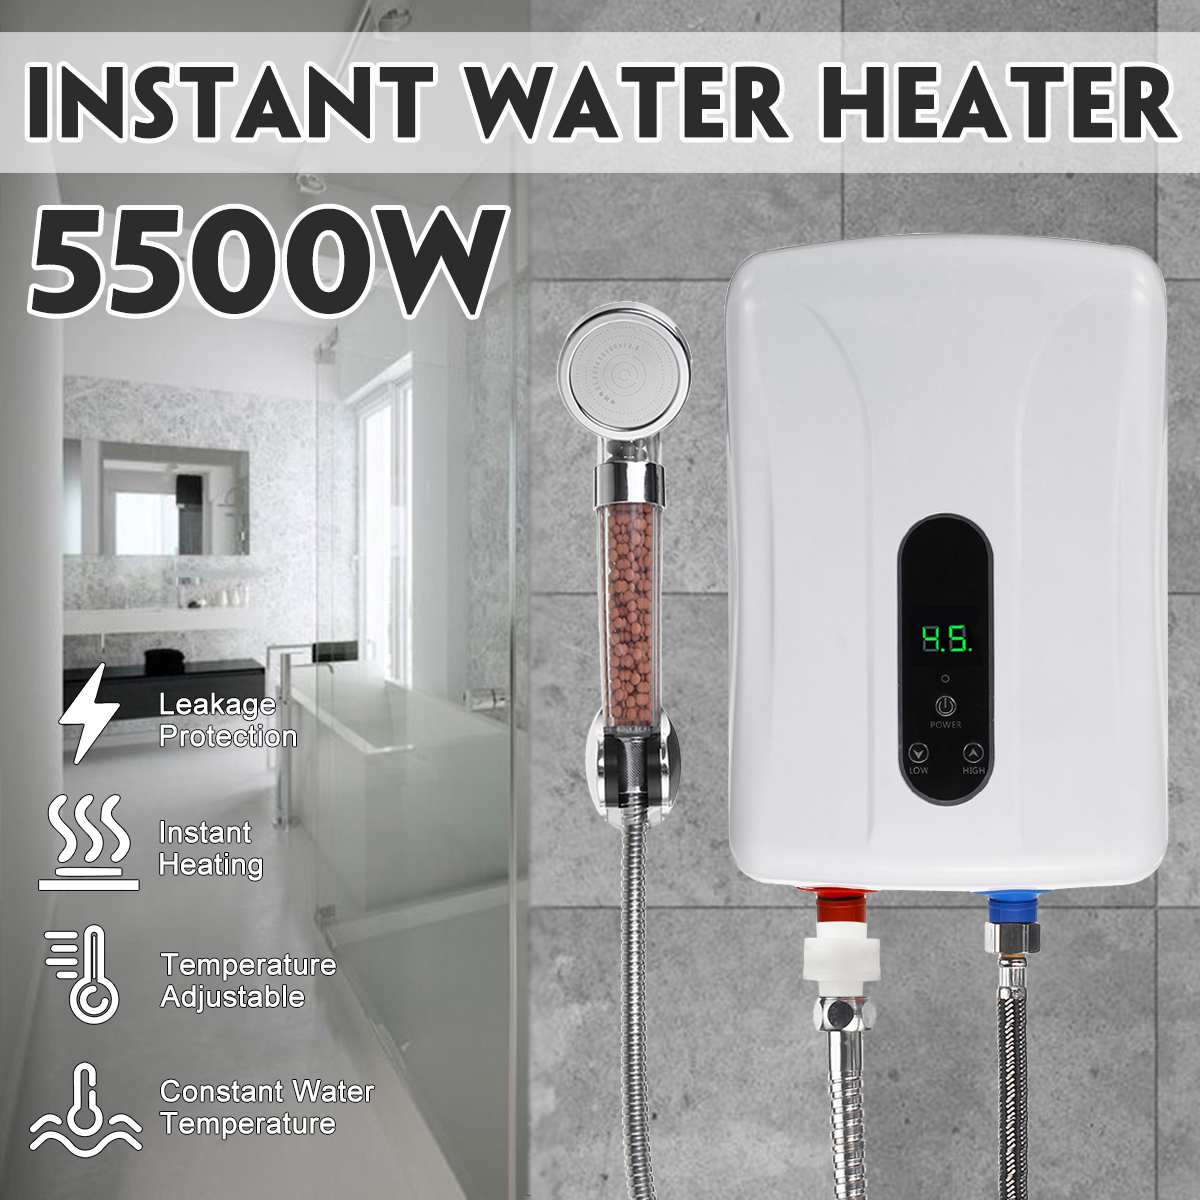 220v-mini-electric-water-heaters-instant-5500w-electric-hot-water-heater-shower-intelligent-electric-heater-with-shower-head